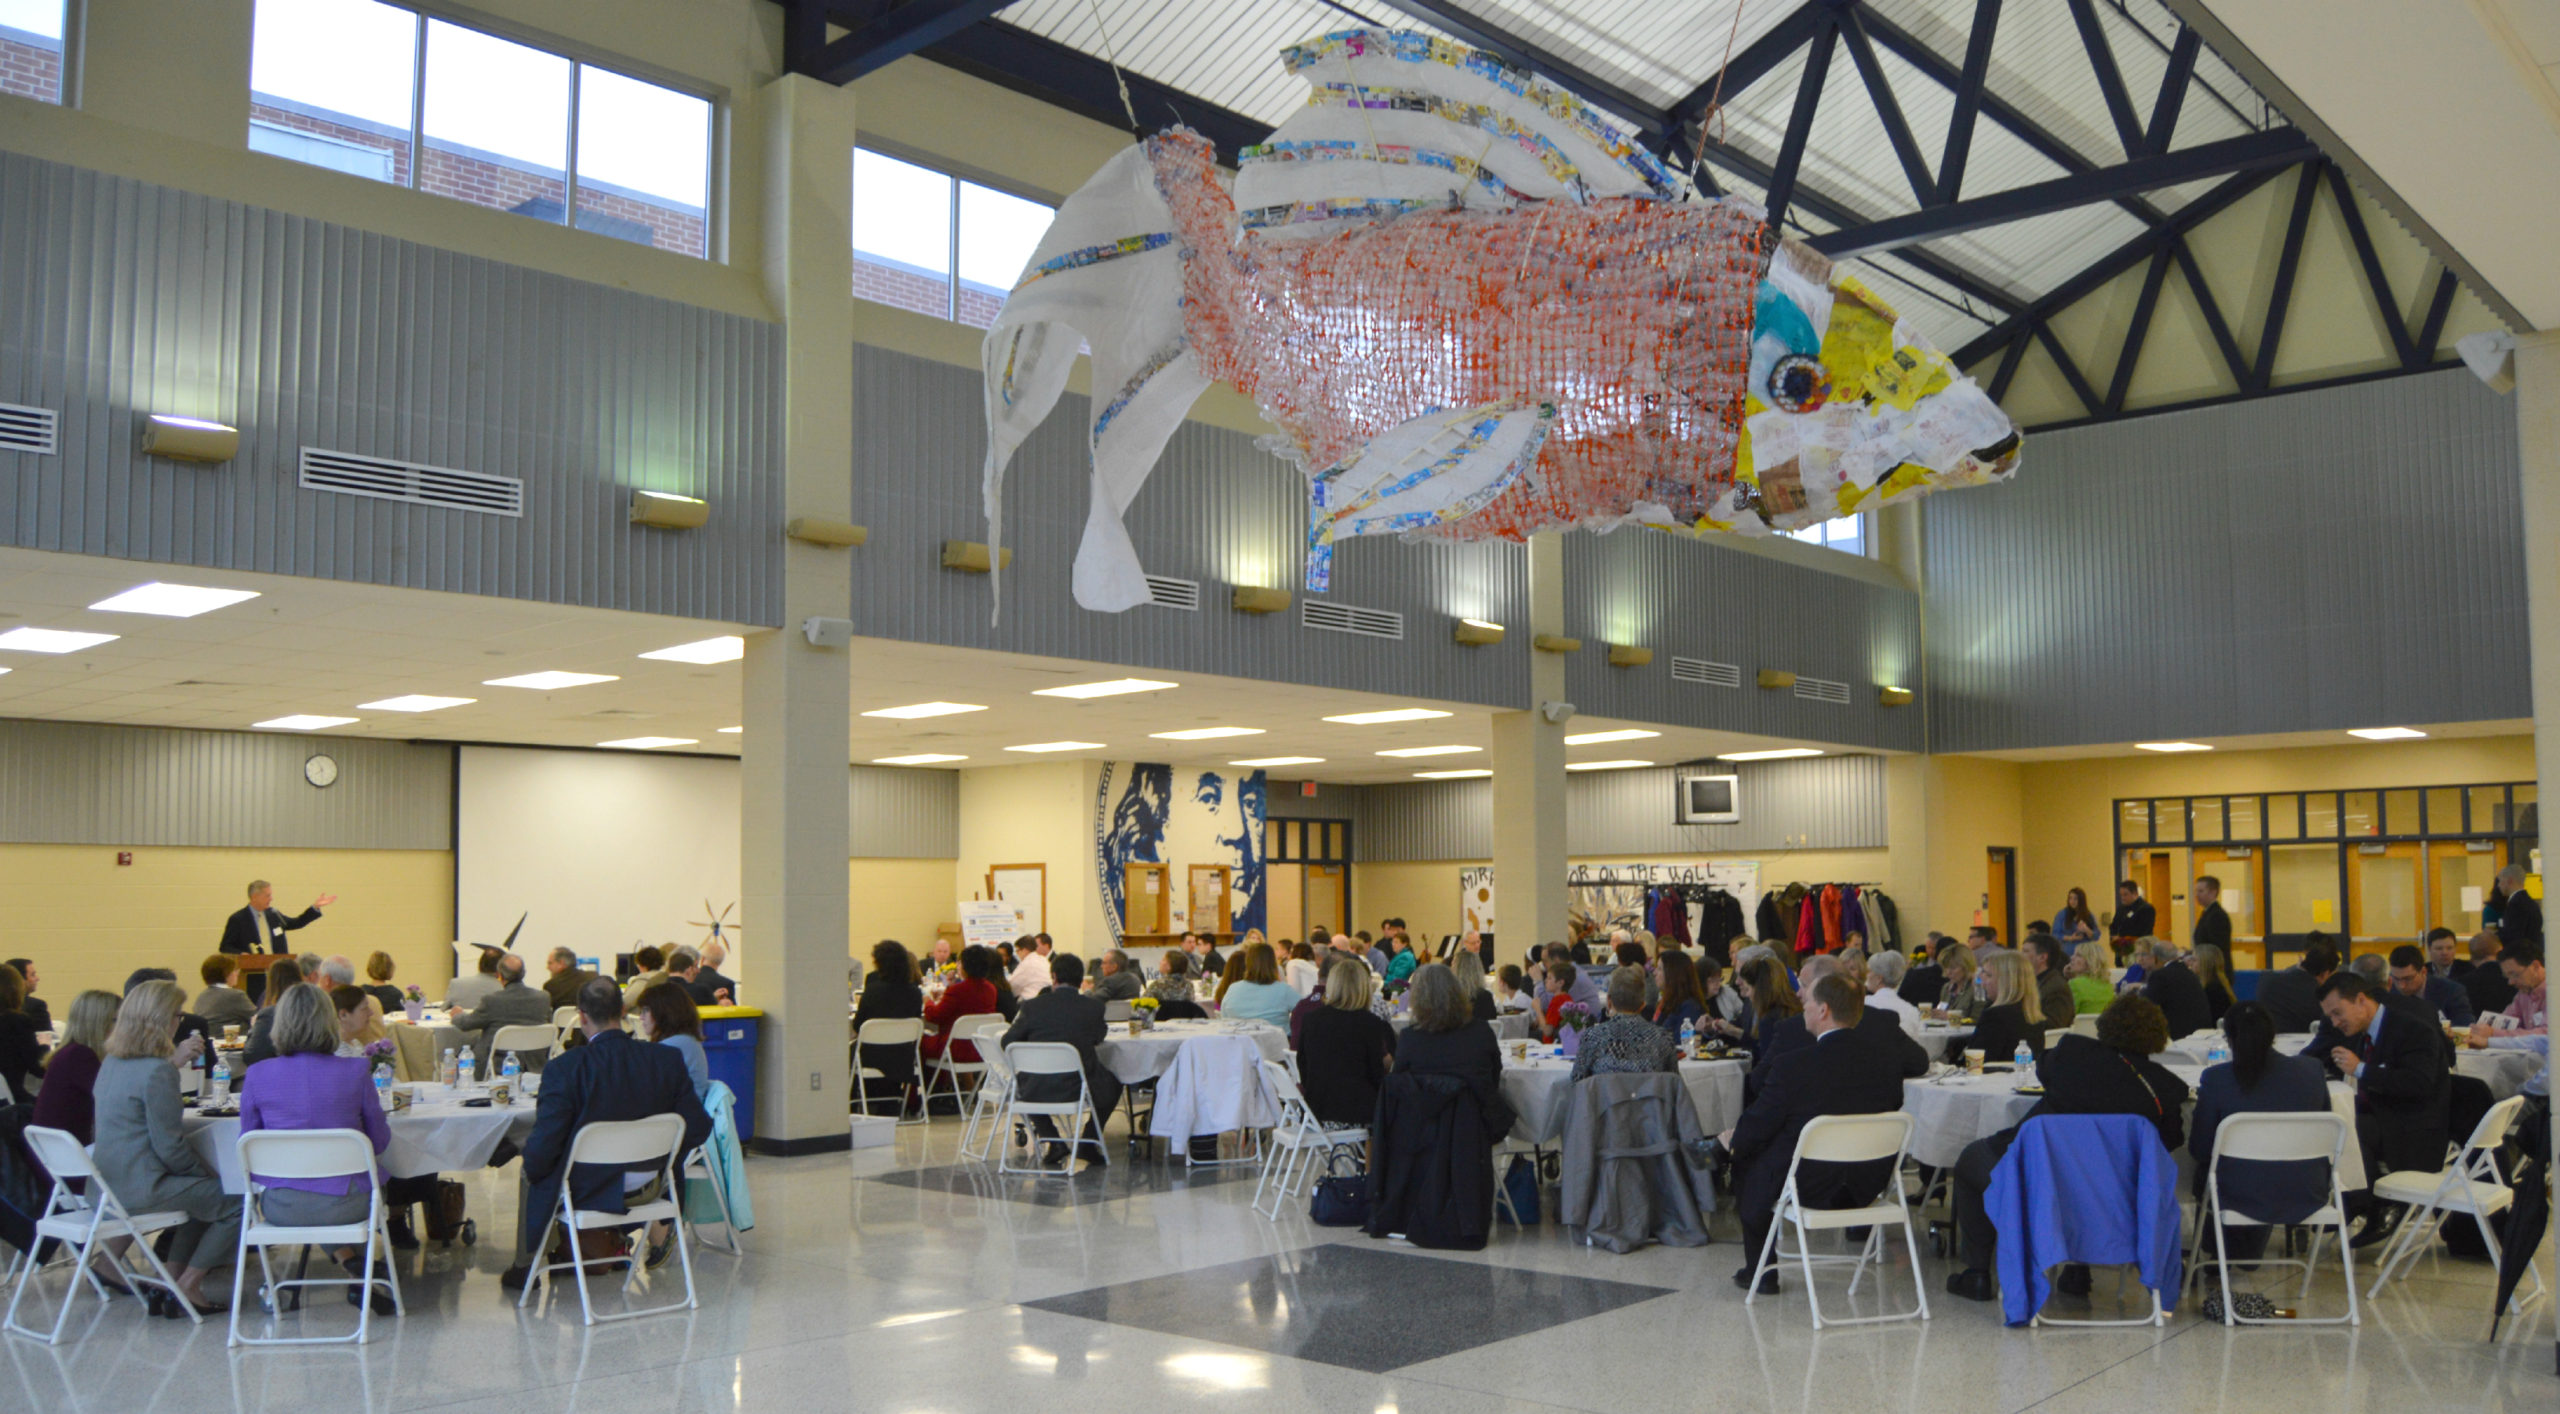 Dynamic Breakfast to Showcase West Chester Education Experiences